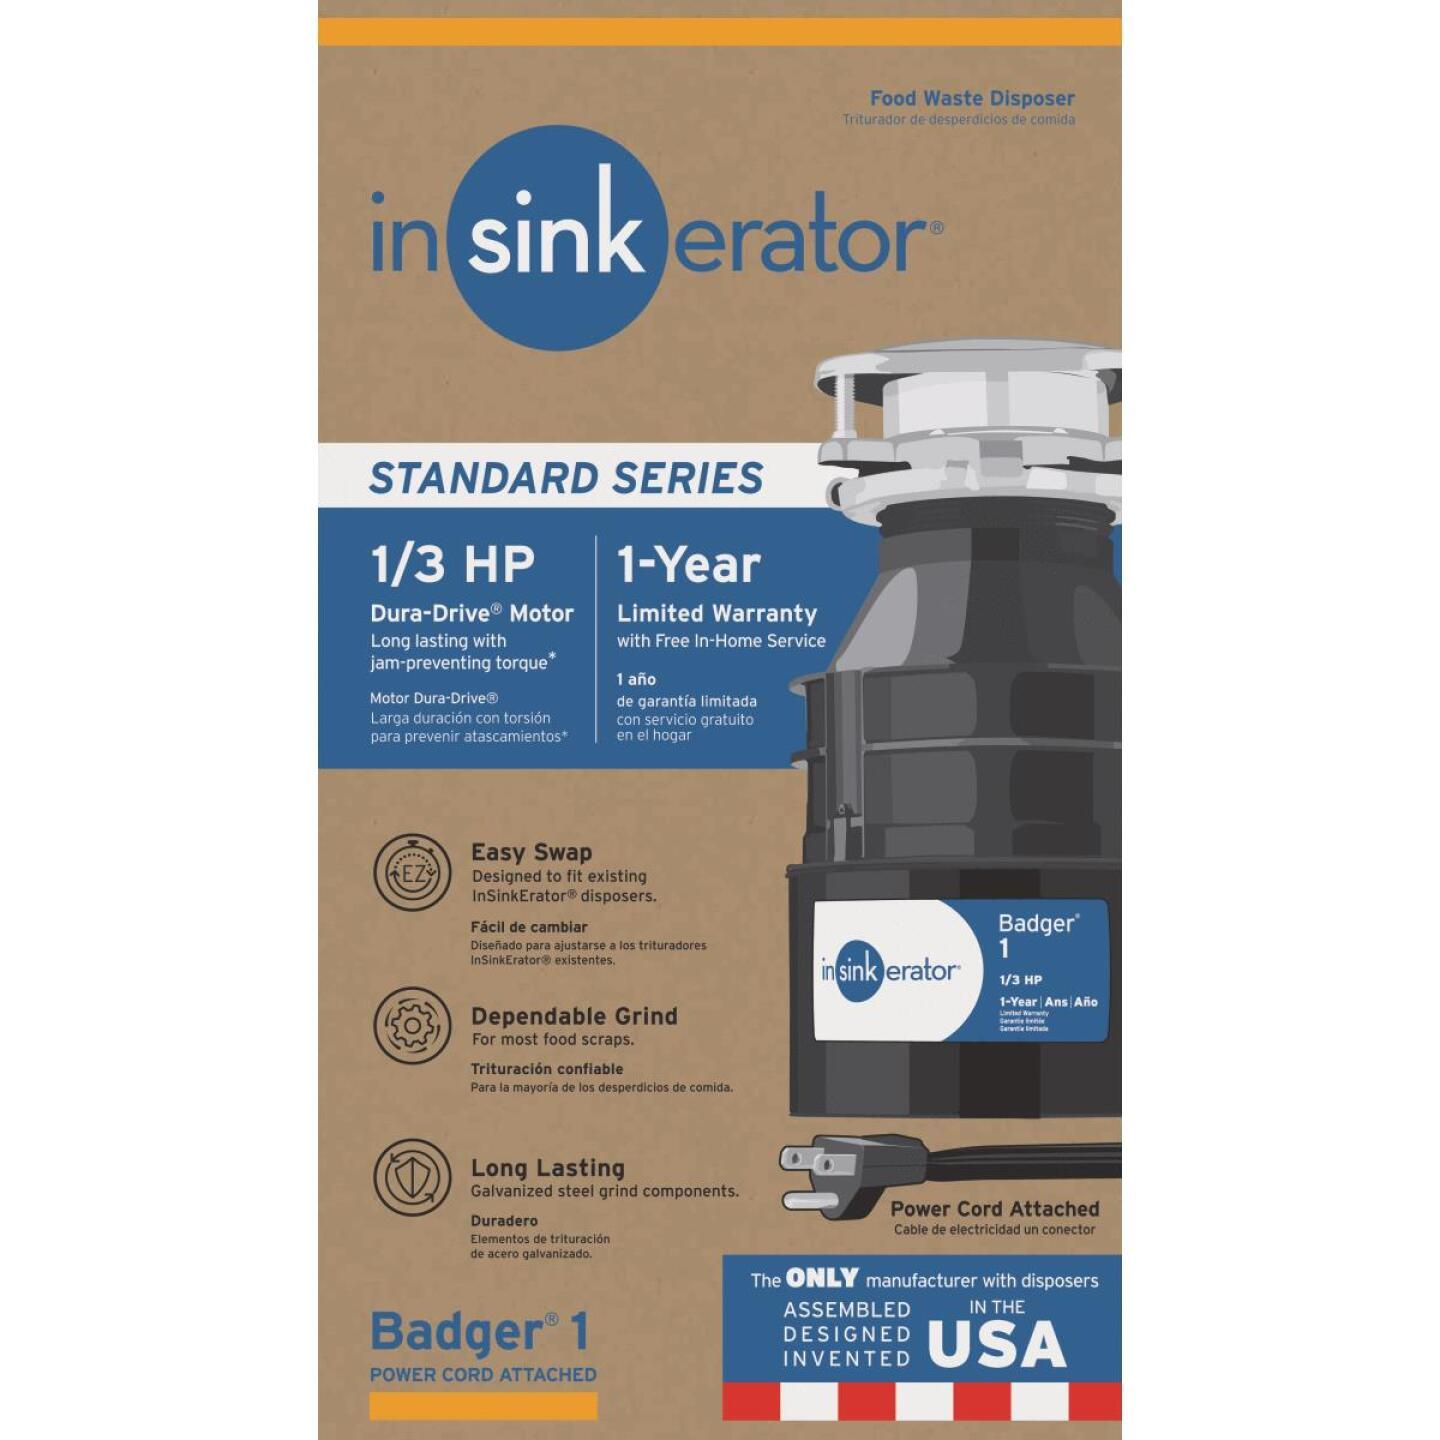 Insinkerator 1/3 HP Badger 1 Garbage Disposal with Power Cord, 1 Year Warranty Image 1